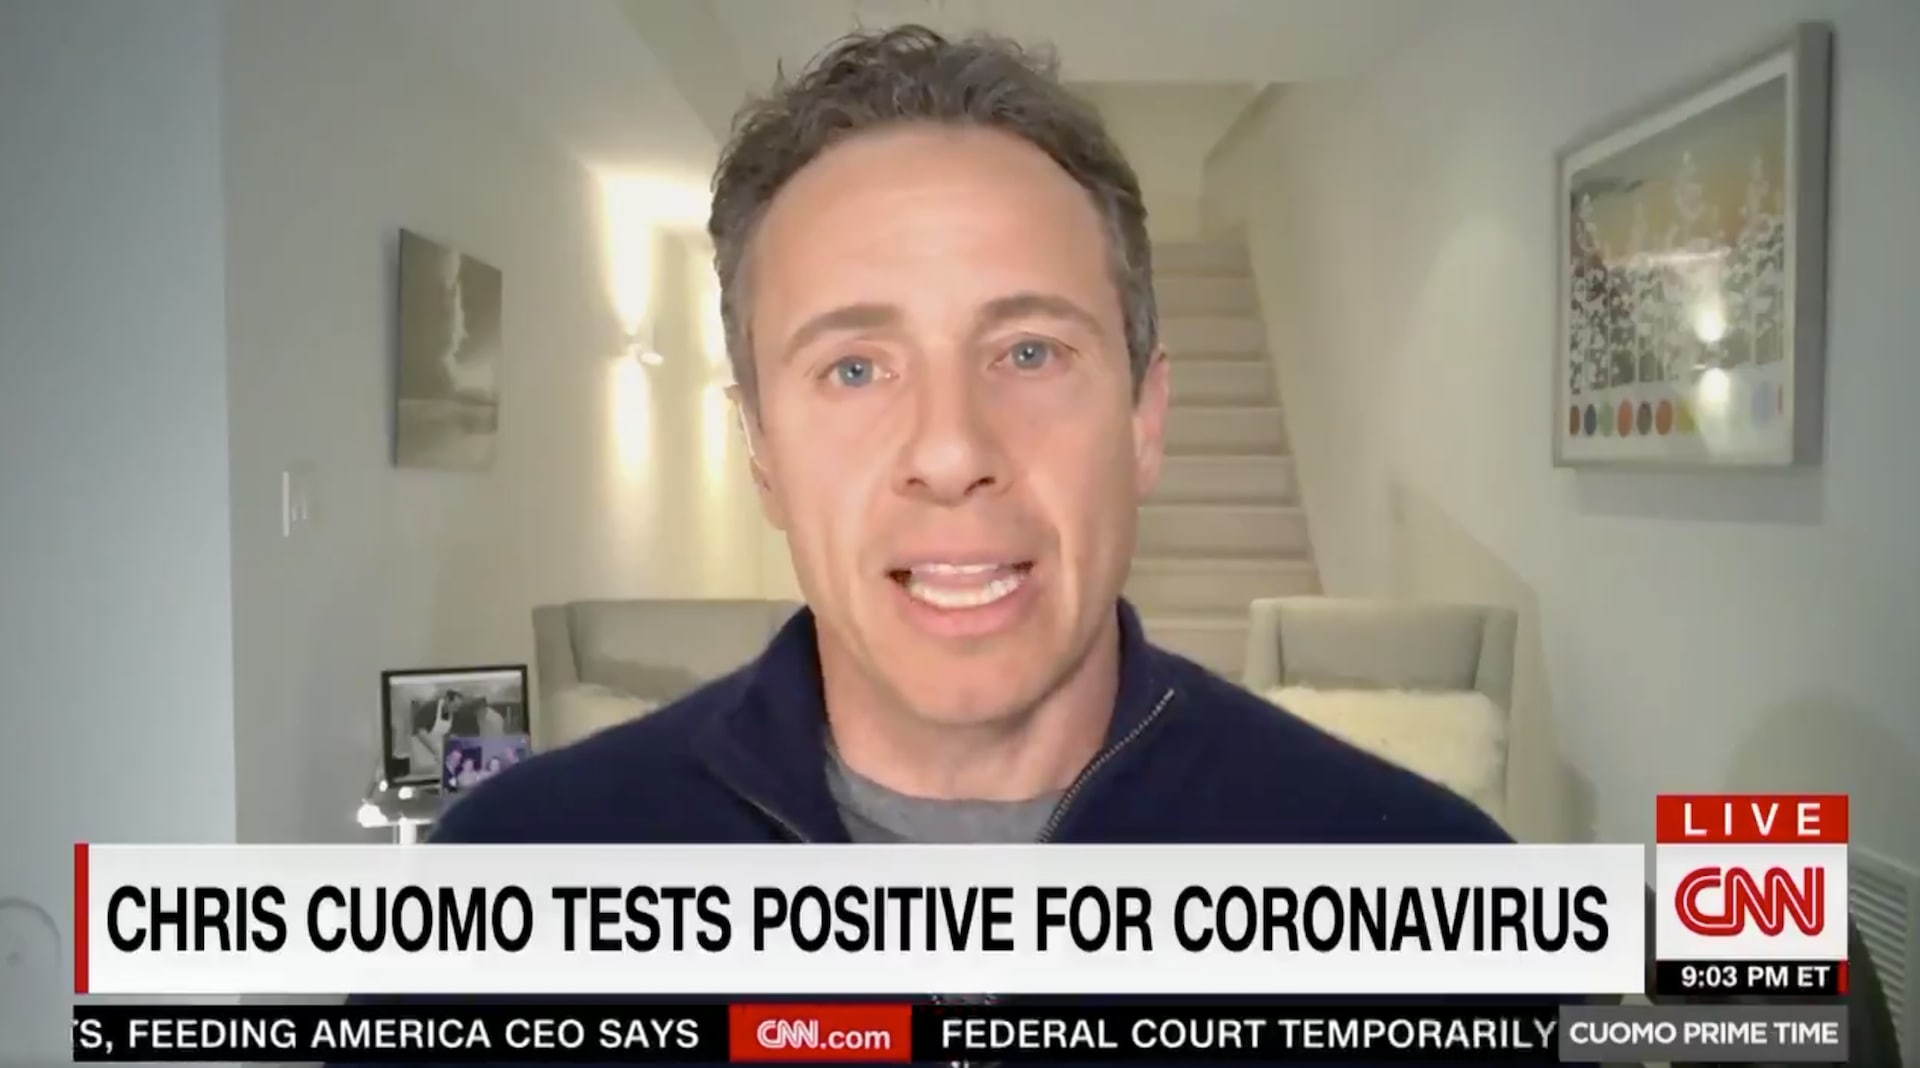 Chris Cuomo on CNN